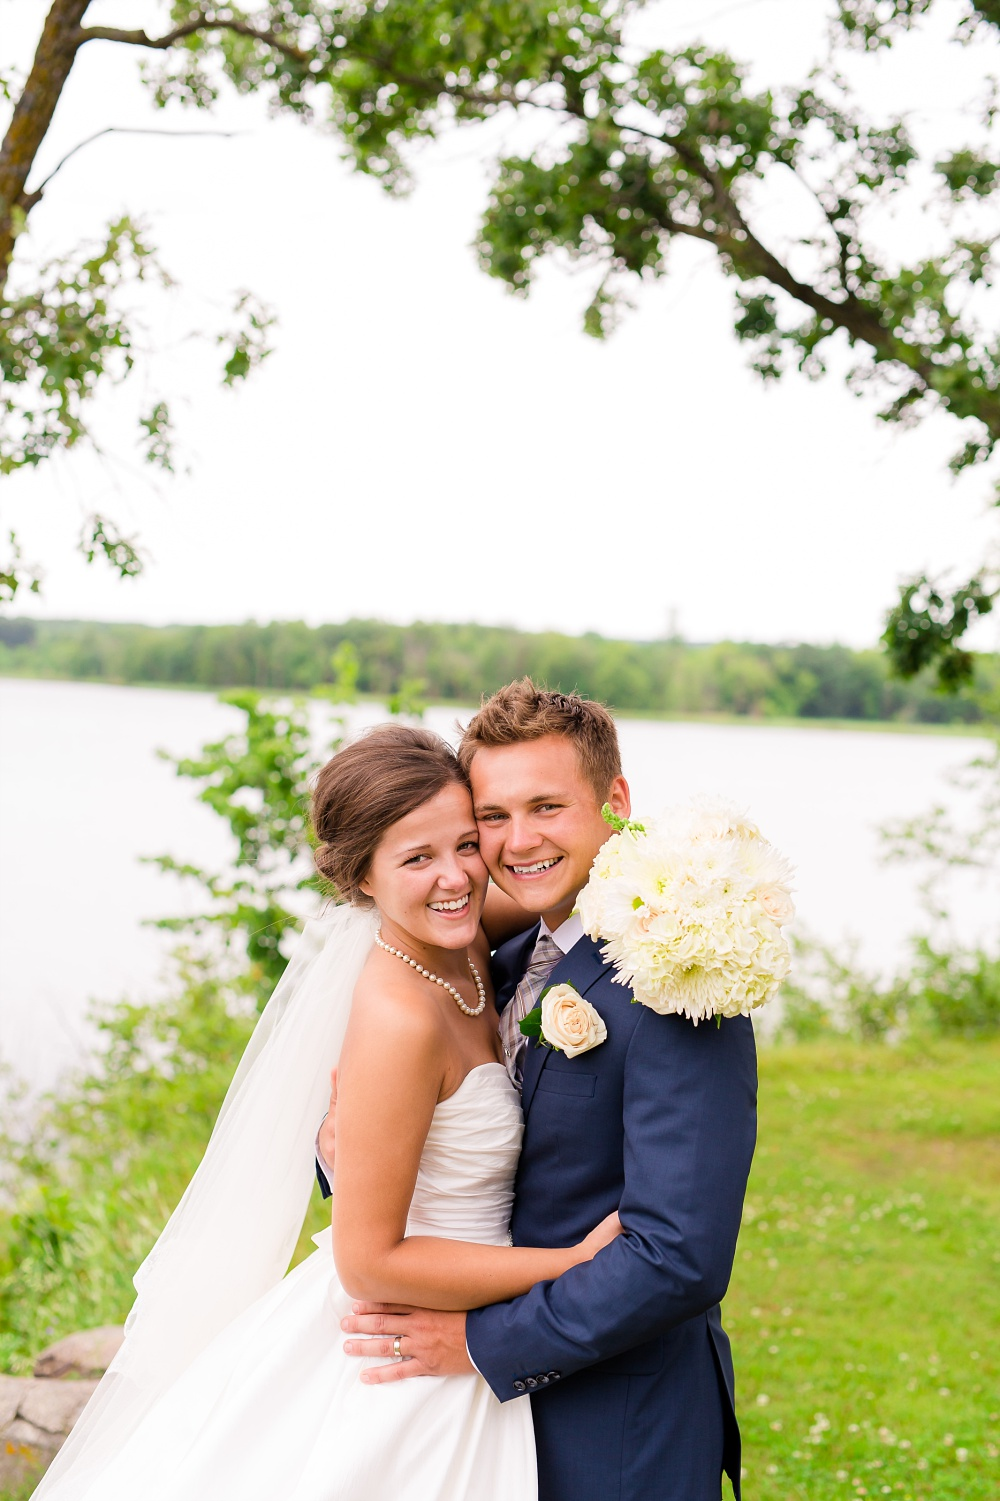 Wolf Lake, MN Country Styled Wedding, White Dress, Blue Suite | Photographed by Amber Langerud Photography | Bride & Groom by Lake